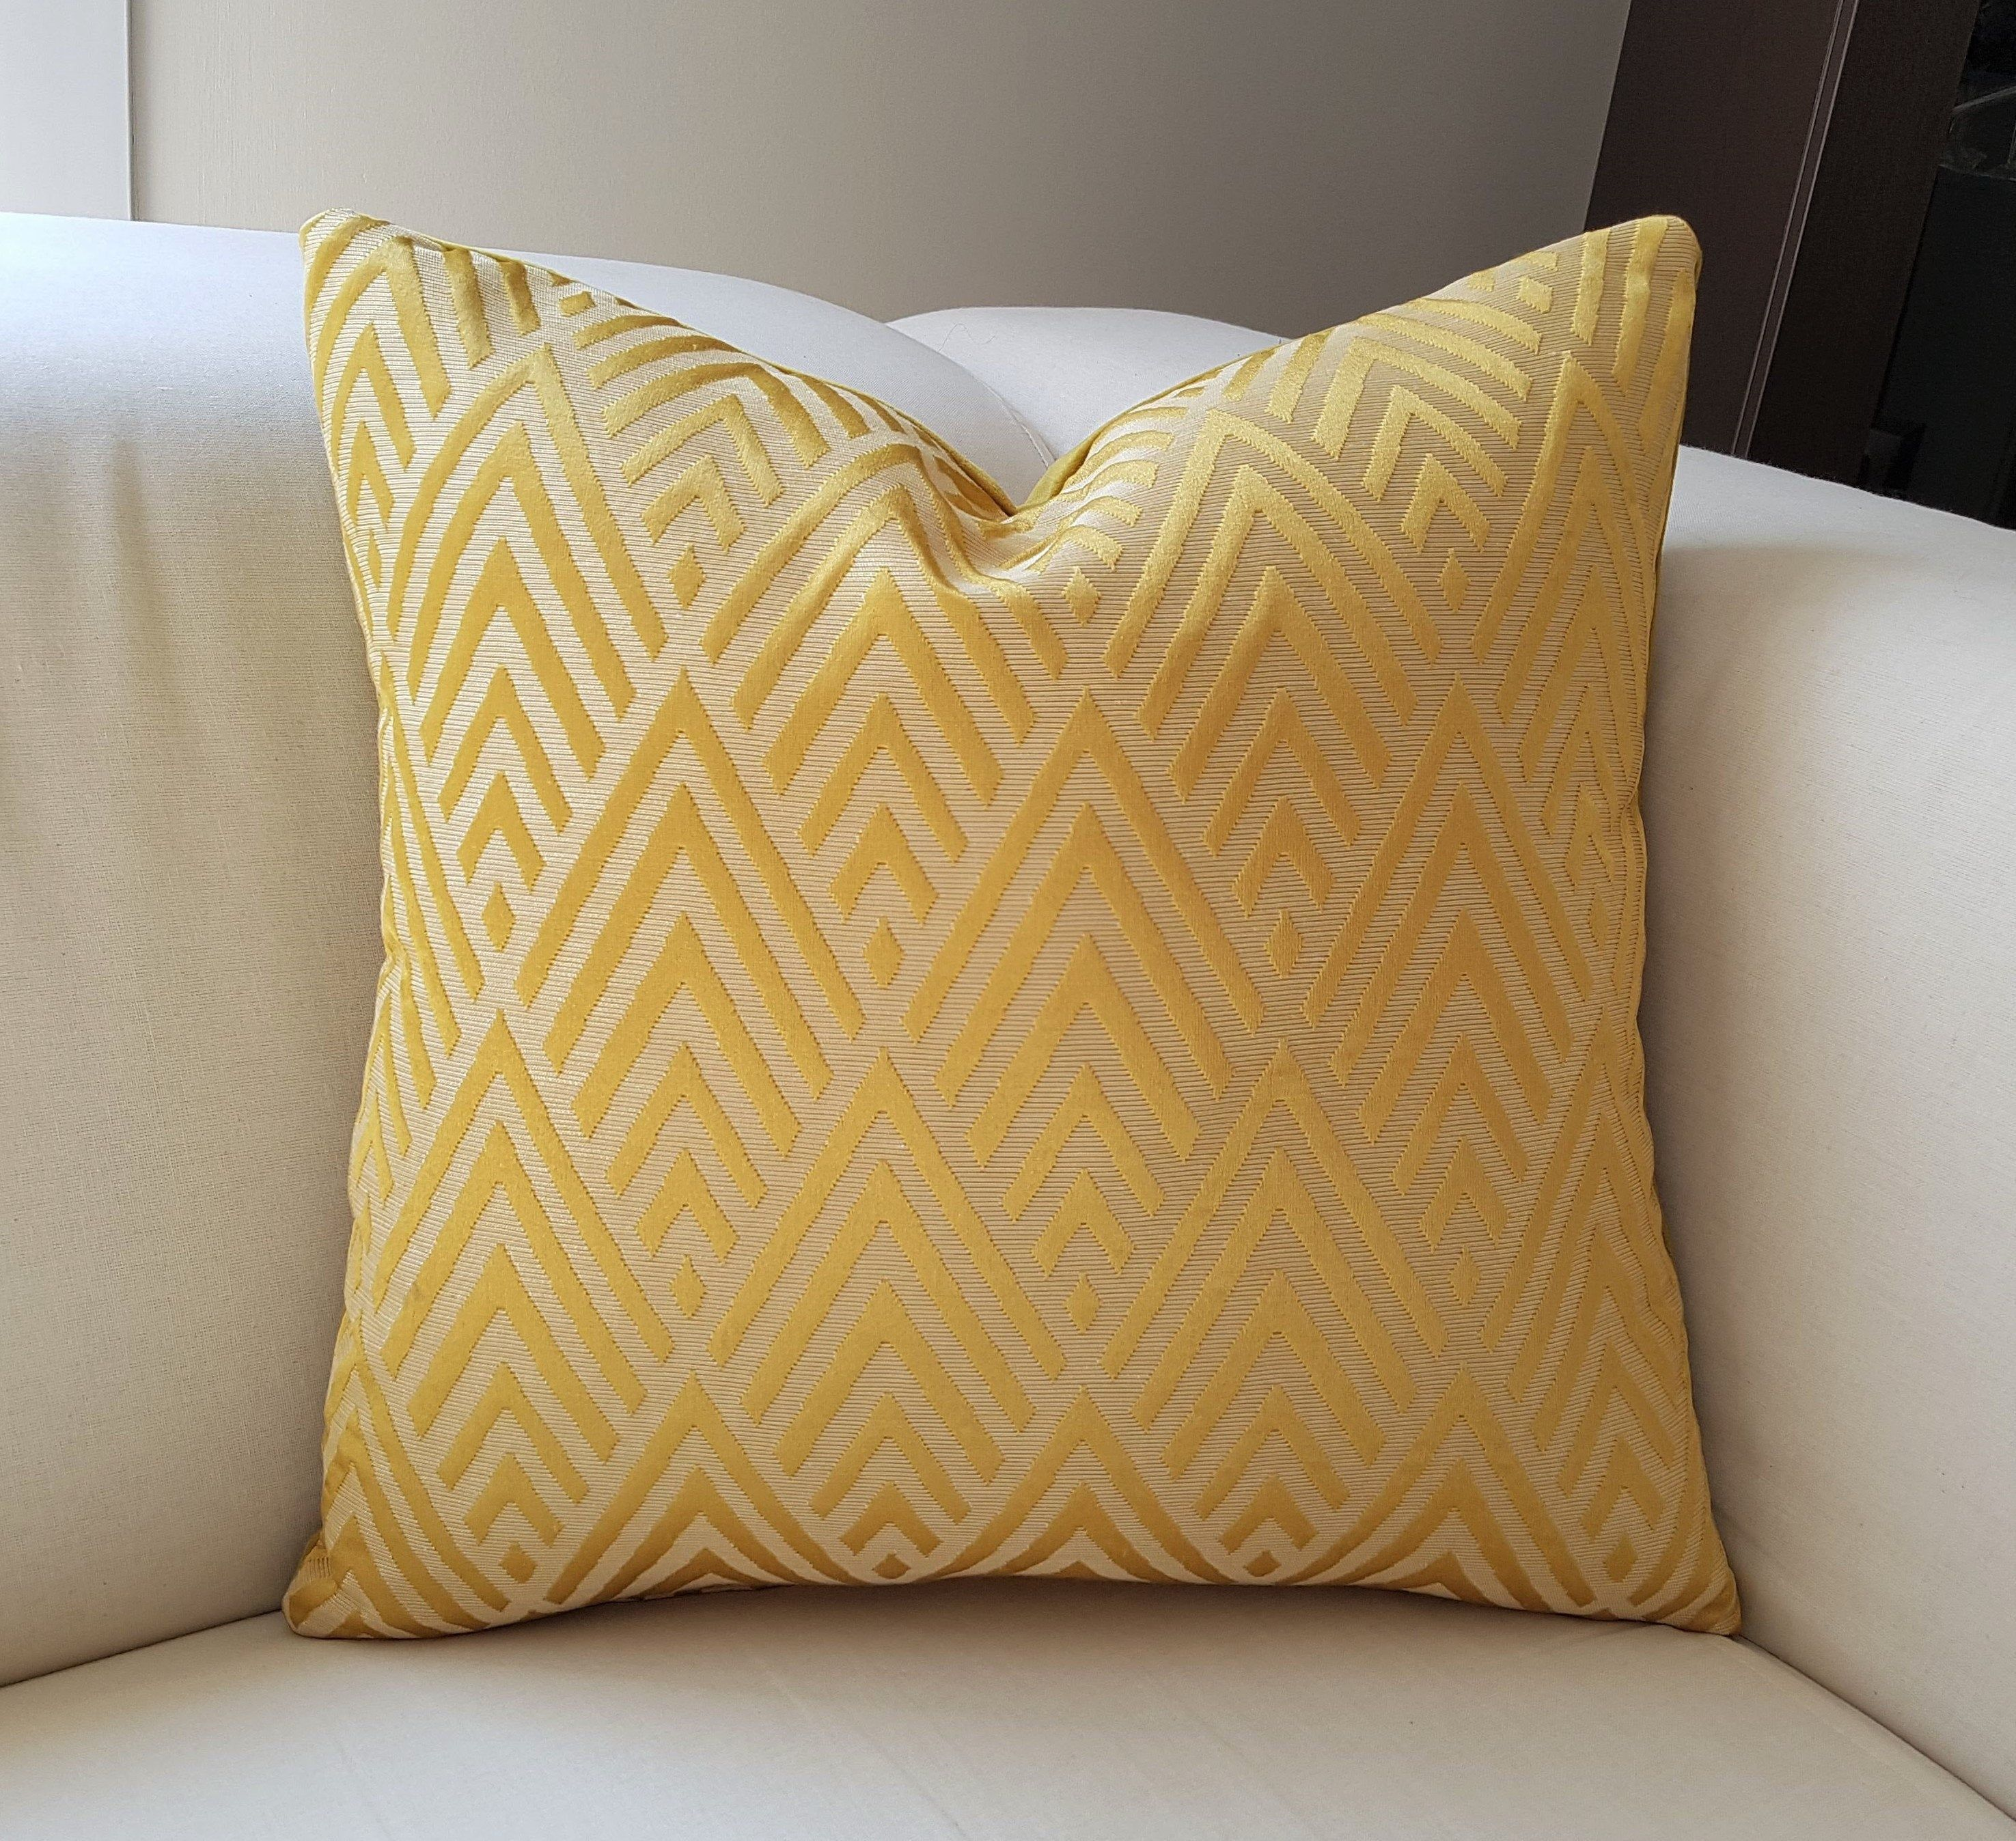 Pillow Covers Luxury Gold Orange Pillow Premium Quality Decorative